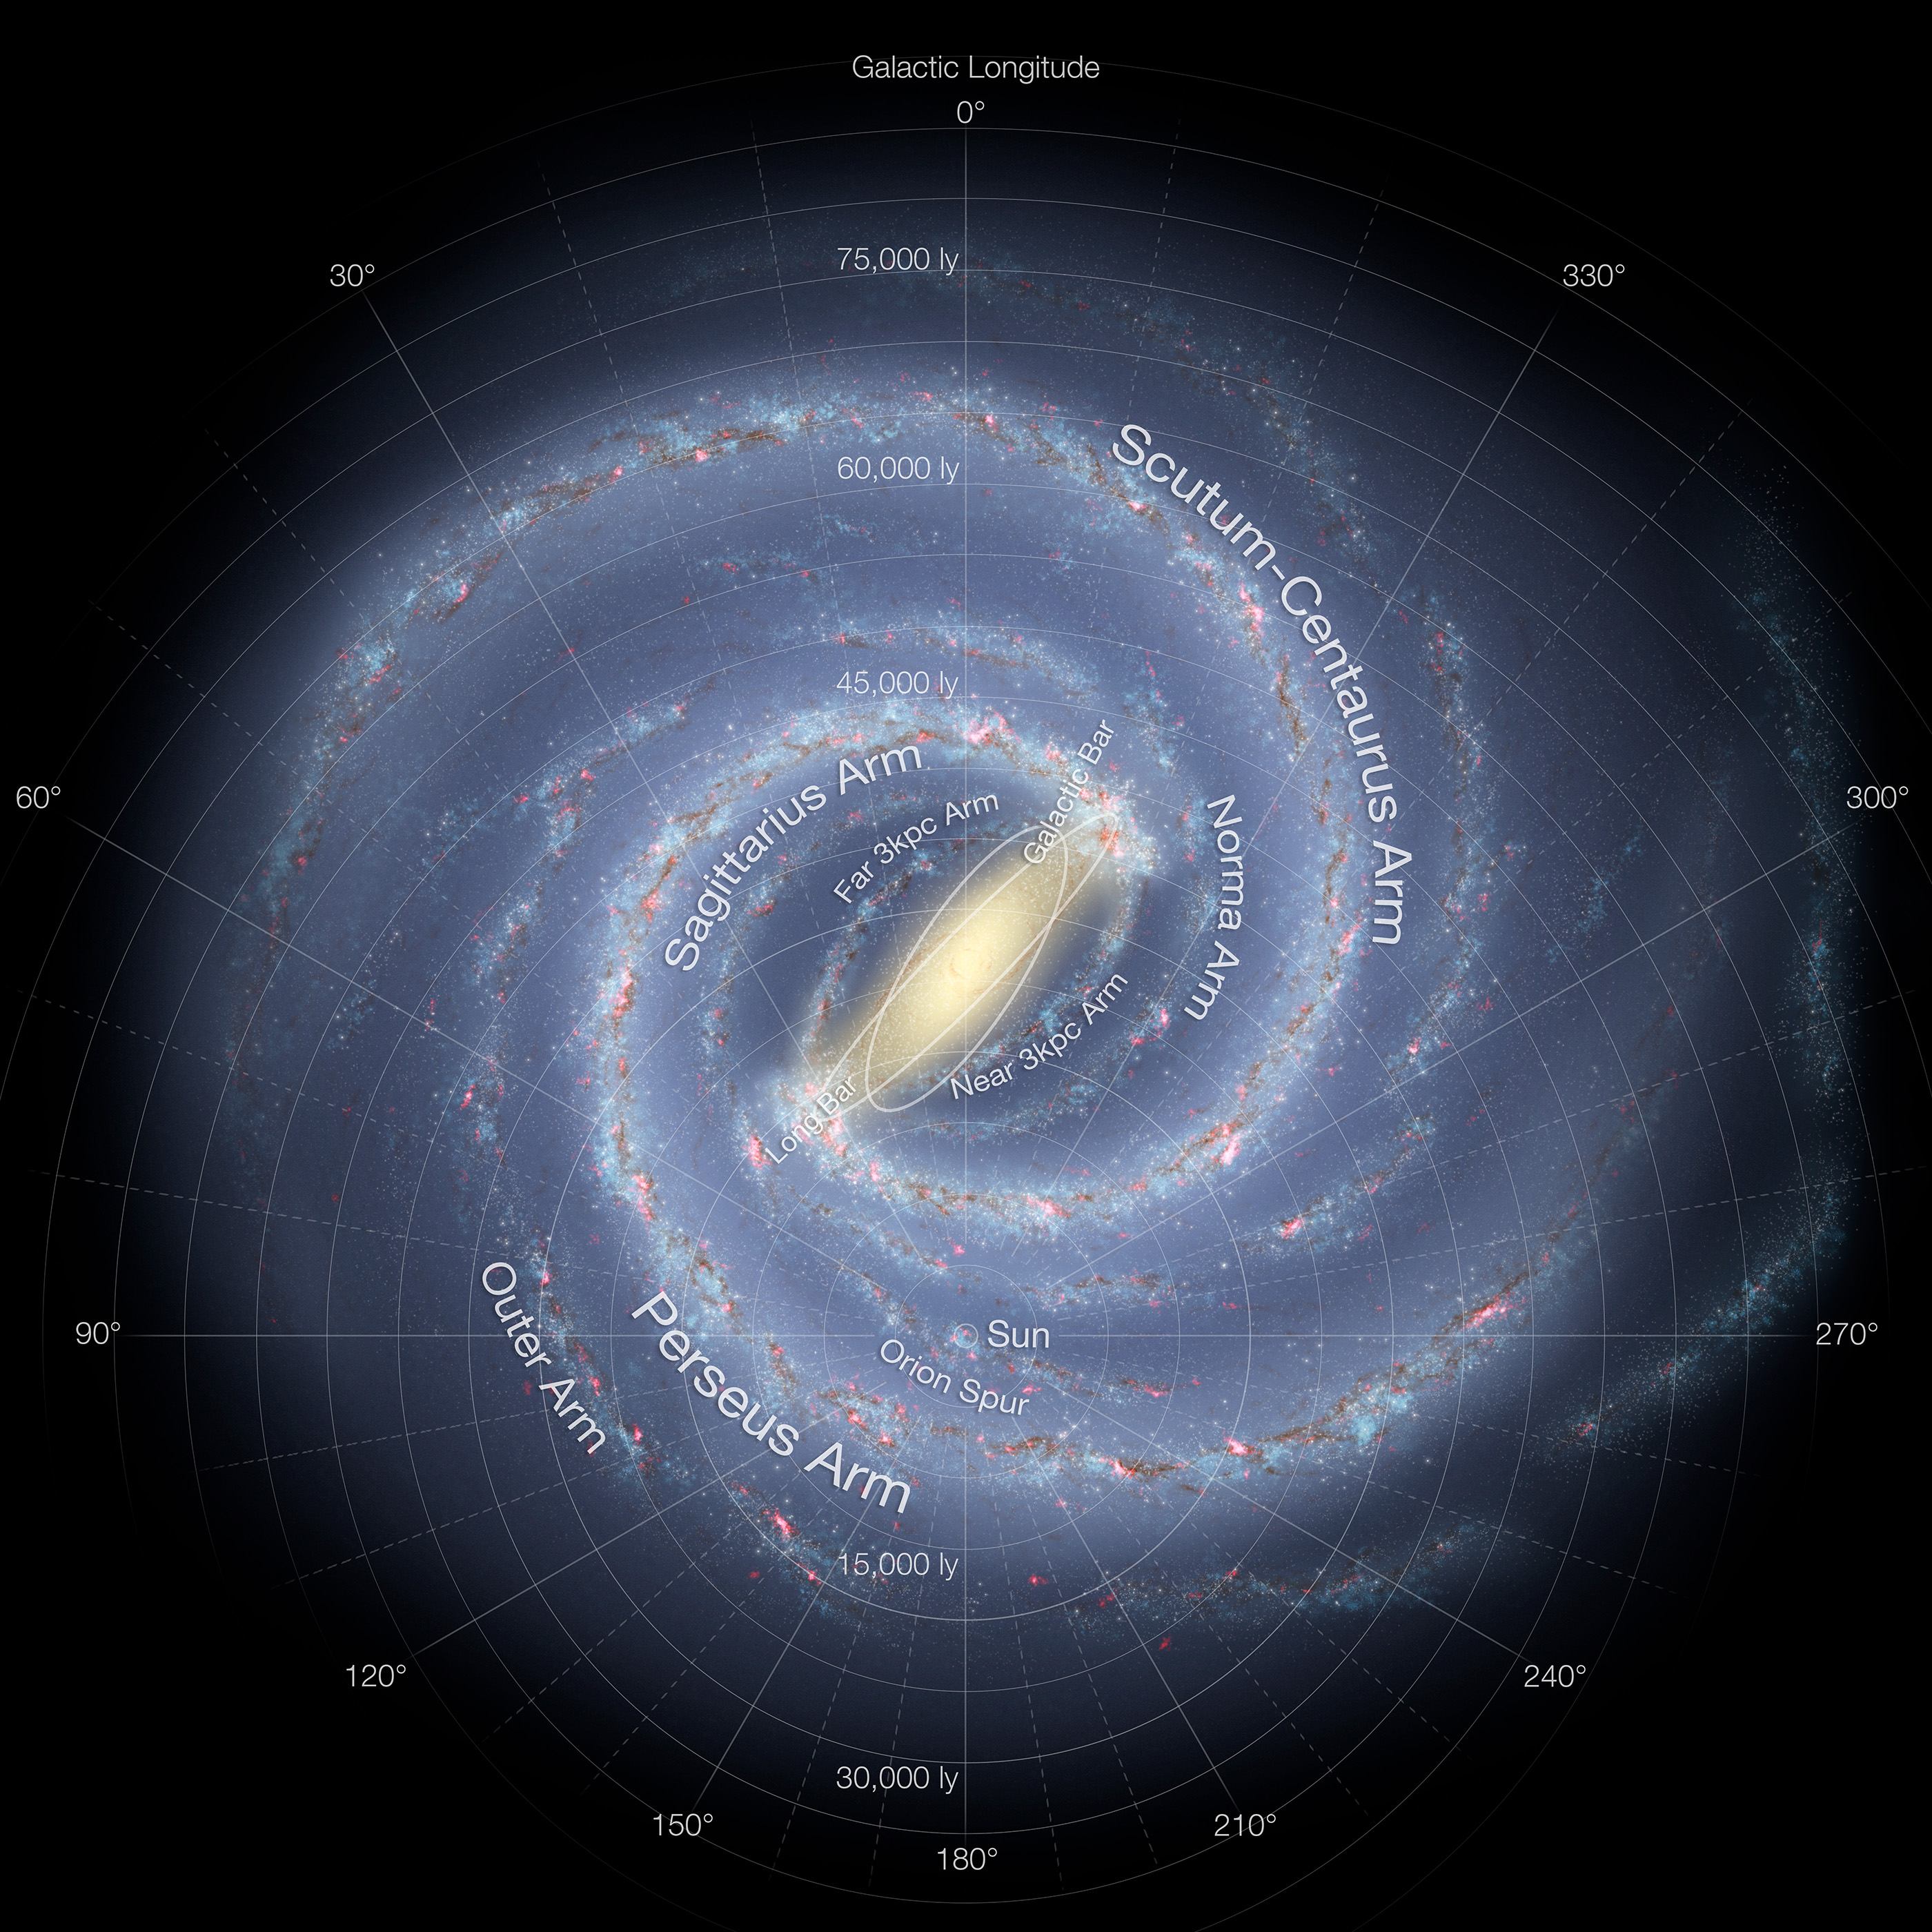 Artist's impression of the Milky Way (updated - annotated)